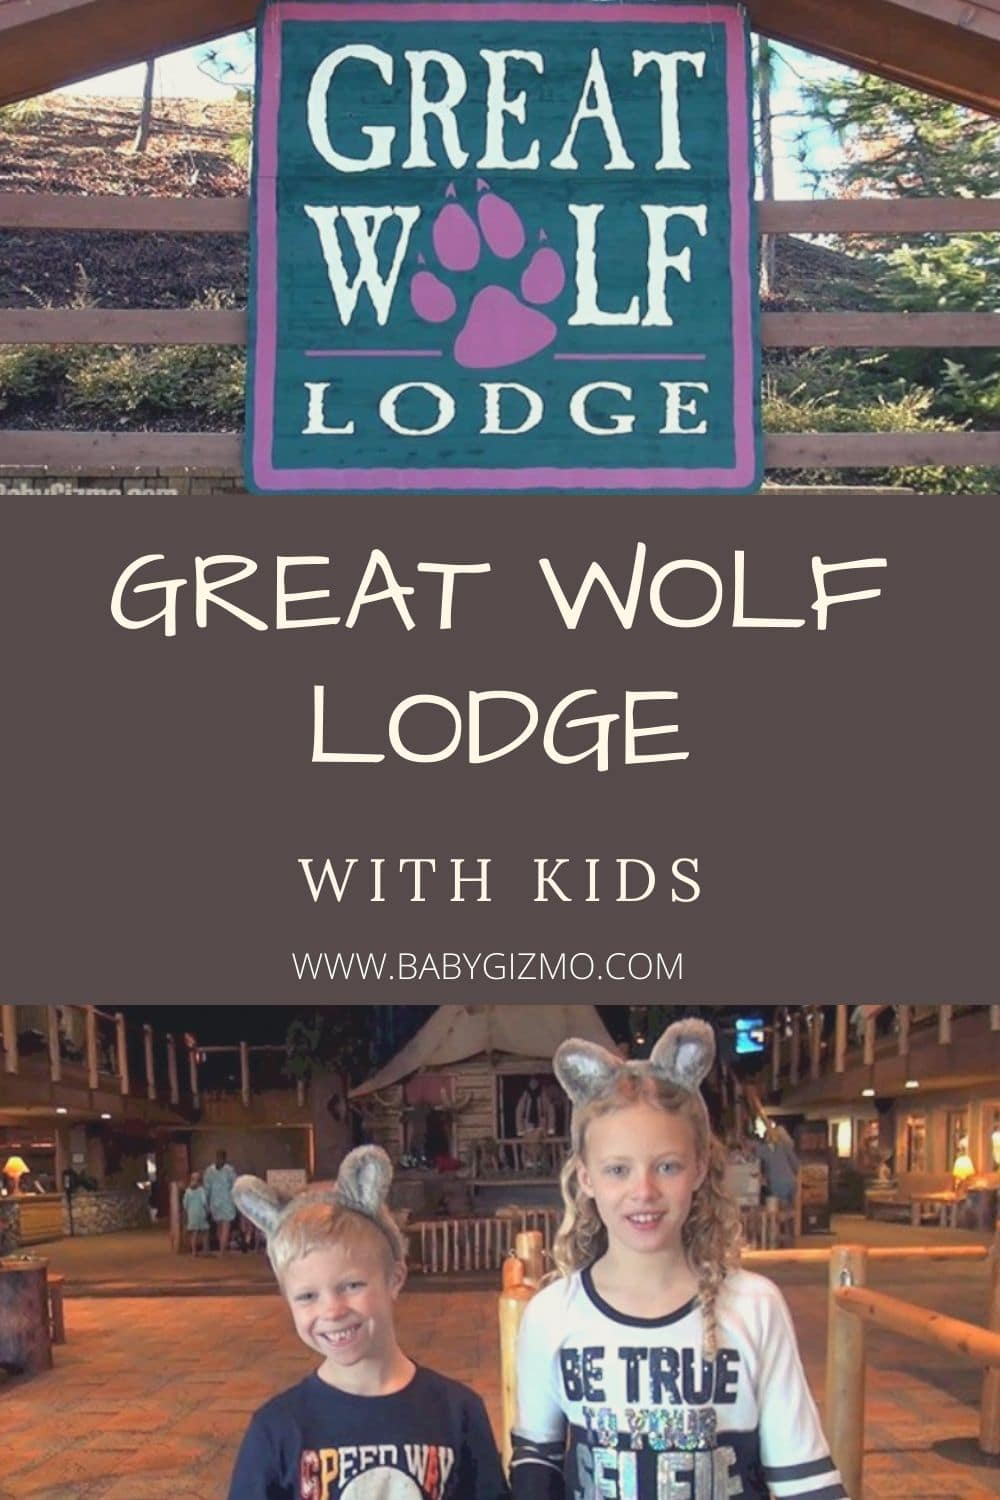 GREAT WOLF LODGE WITH KIDS